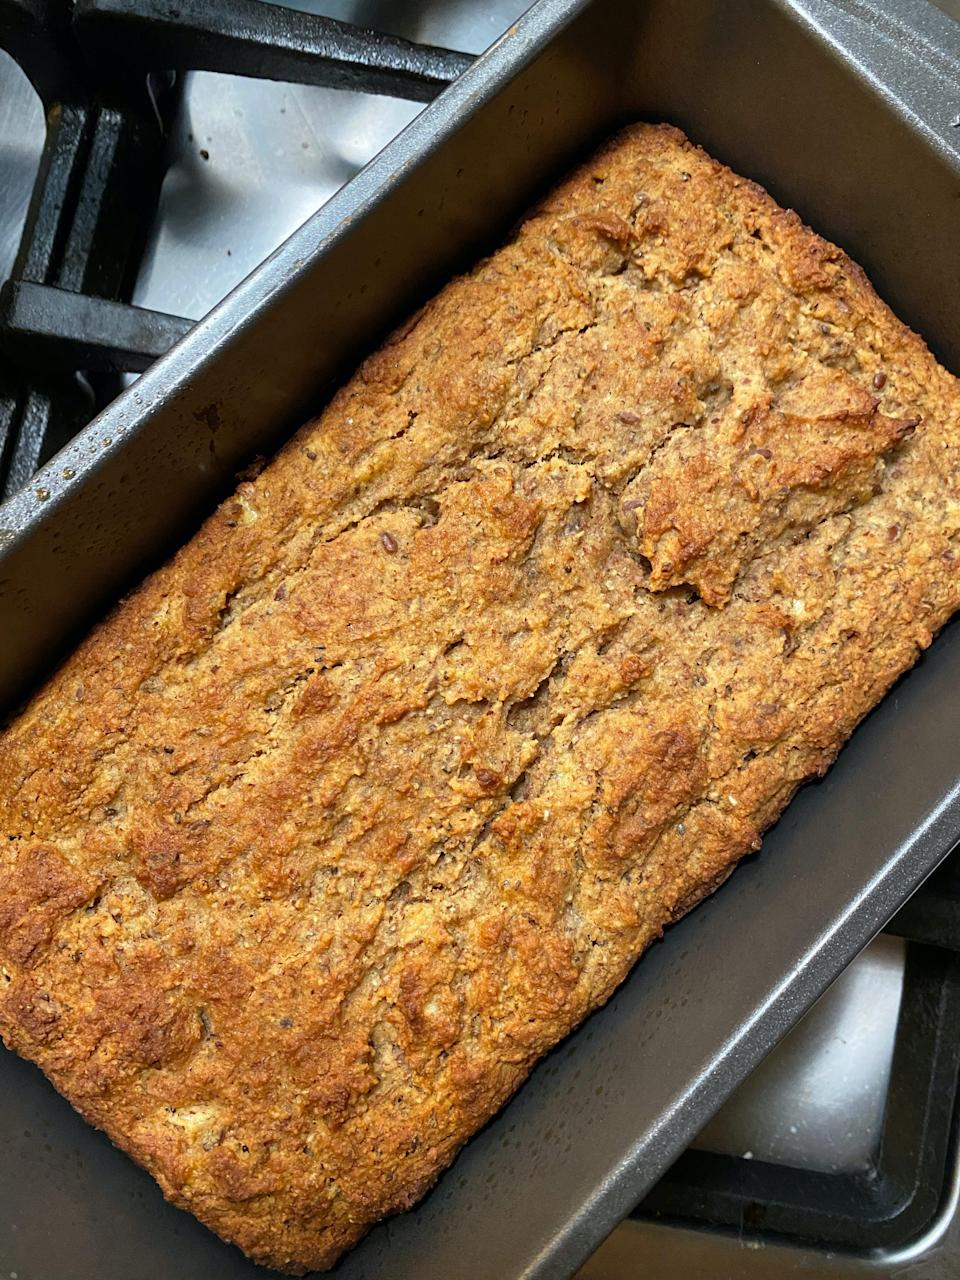 """<h2>Purely Elizabeth Bread & Muffin Mix</h2><br>""""Last month, I rediscovered my love of baking and made a series of bread, muffins, and even a stellar batch of pumpkin cookies. However, nothing beat this grain-free, paleo mix that I discovered for the first time. It couldn't be easier to prepare — just add wet ingredients and stick it in the oven — so it's perfect if you're looking for something quick to whip up. My Brooklyn apartment smelled like a bakery, and it tasted so freakin' delicious, you would never know it was a """"healthy"""" alternative to baked goods. I made it once with blueberries and another time with bananas, and both were A+."""" <em>– Karina Hoshikawa, Beauty & Wellness Writer</em><br><br><em>Shop <strong><a href=""""https://thrivemarket.com/p/purely-elizabeth-bread-and-muffin-mix-grain-free"""" rel=""""nofollow noopener"""" target=""""_blank"""" data-ylk=""""slk:Thrive Market"""" class=""""link rapid-noclick-resp"""">Thrive Market</a></strong></em><br><br><strong>Purely Elizabeth</strong> Bread and Muffin Mix, Grain Free, $, available at <a href=""""https://go.skimresources.com/?id=30283X879131&url=https%3A%2F%2Fthrivemarket.com%2Fp%2Fpurely-elizabeth-bread-and-muffin-mix-grain-free"""" rel=""""nofollow noopener"""" target=""""_blank"""" data-ylk=""""slk:Thrive Market"""" class=""""link rapid-noclick-resp"""">Thrive Market</a>"""